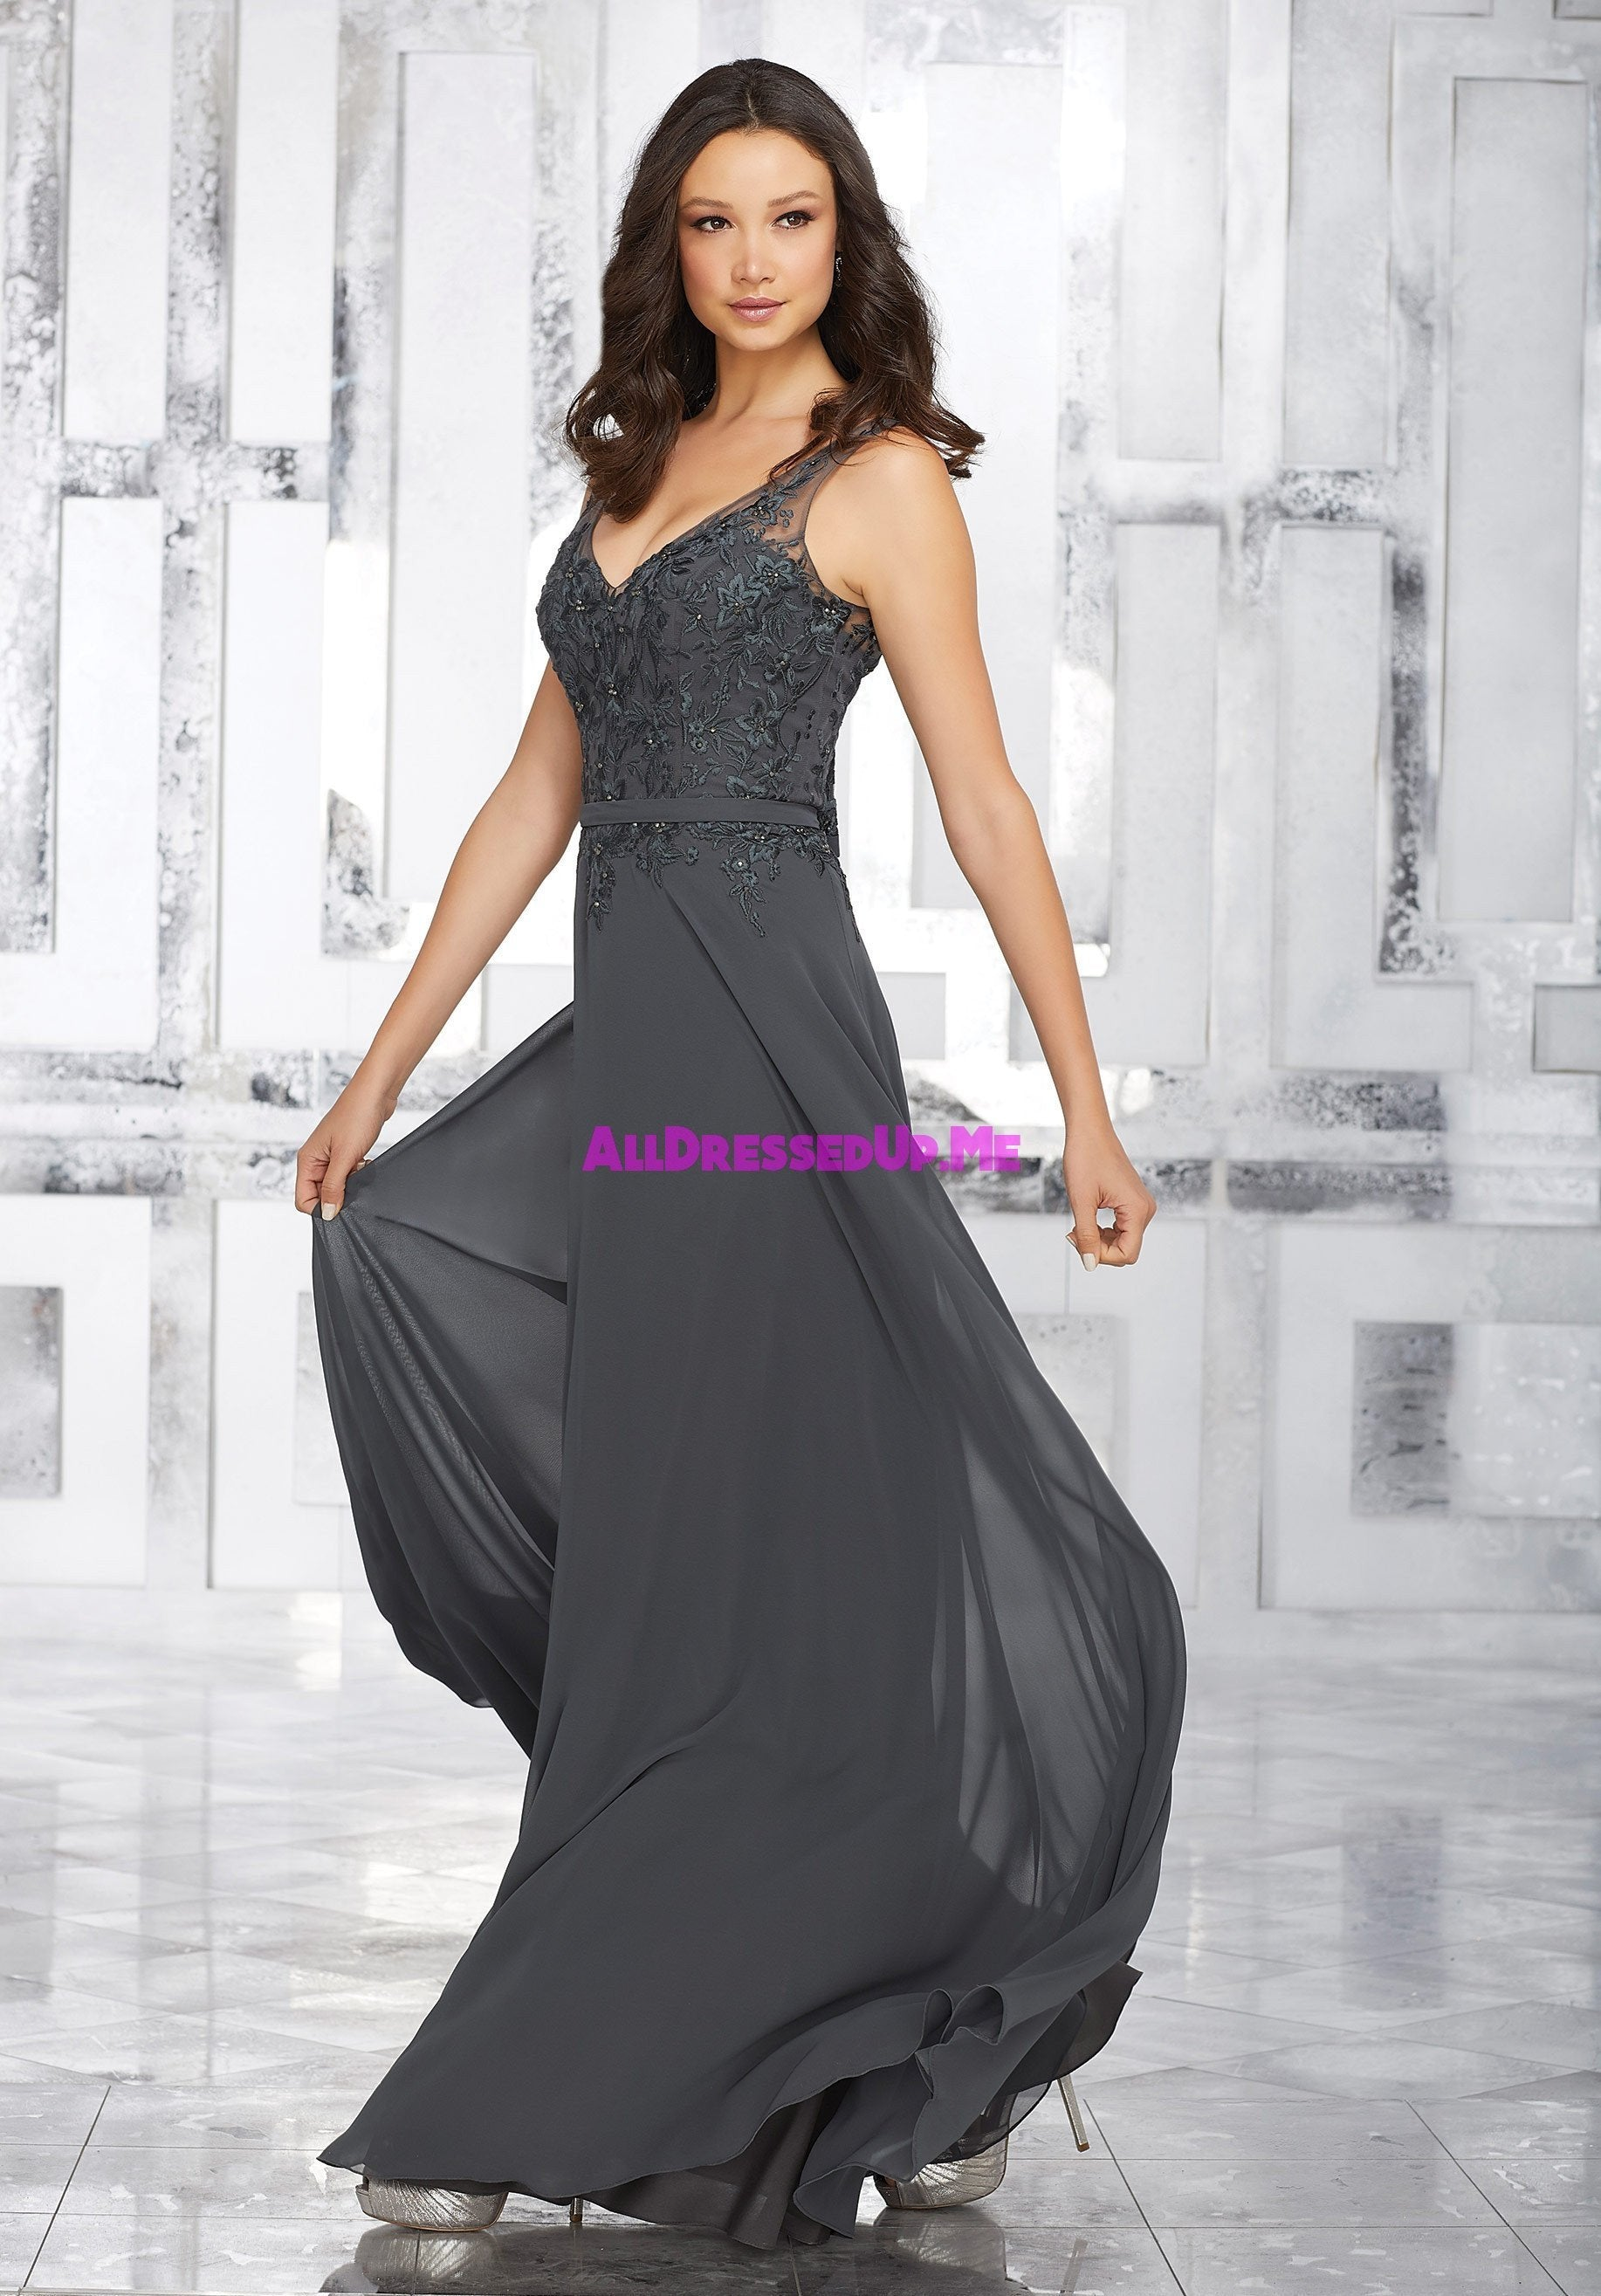 a16ea86eabe5 Mori Lee Bridesmaids - 21544 - All Dressed Up, Bridesmaids - Morilee - -  Dresses